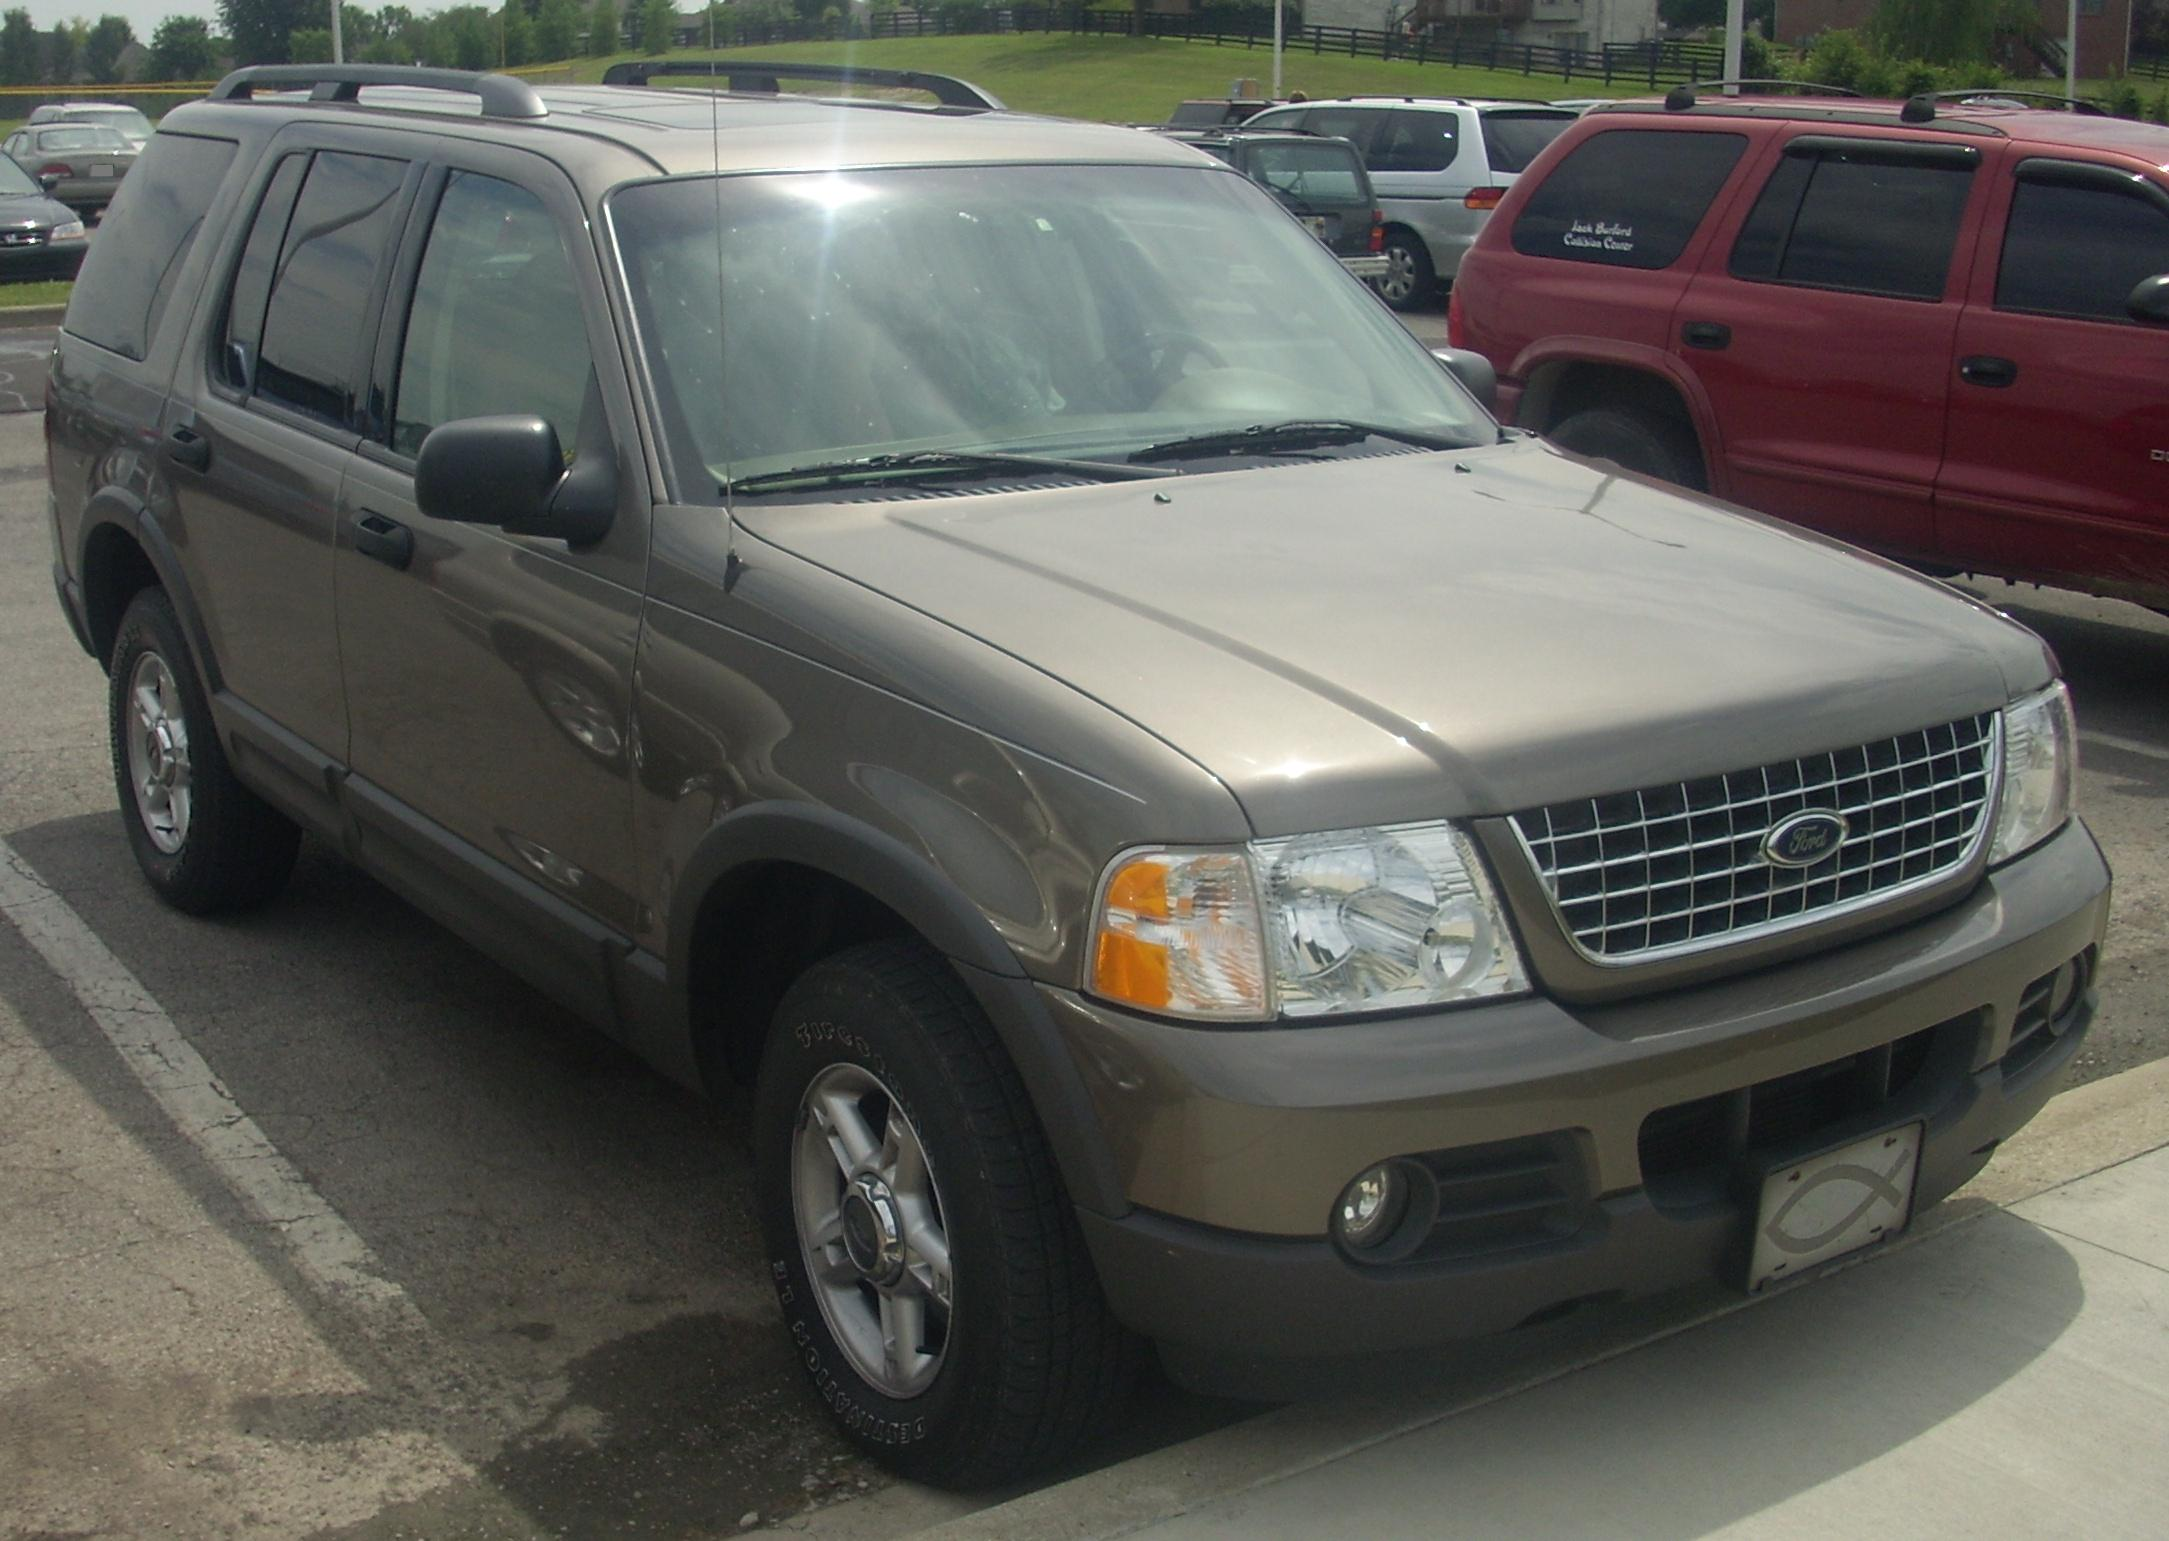 2002 ford explorer owners manual autos post ford explorer 2002 manual download ford explorer 2002 manual español